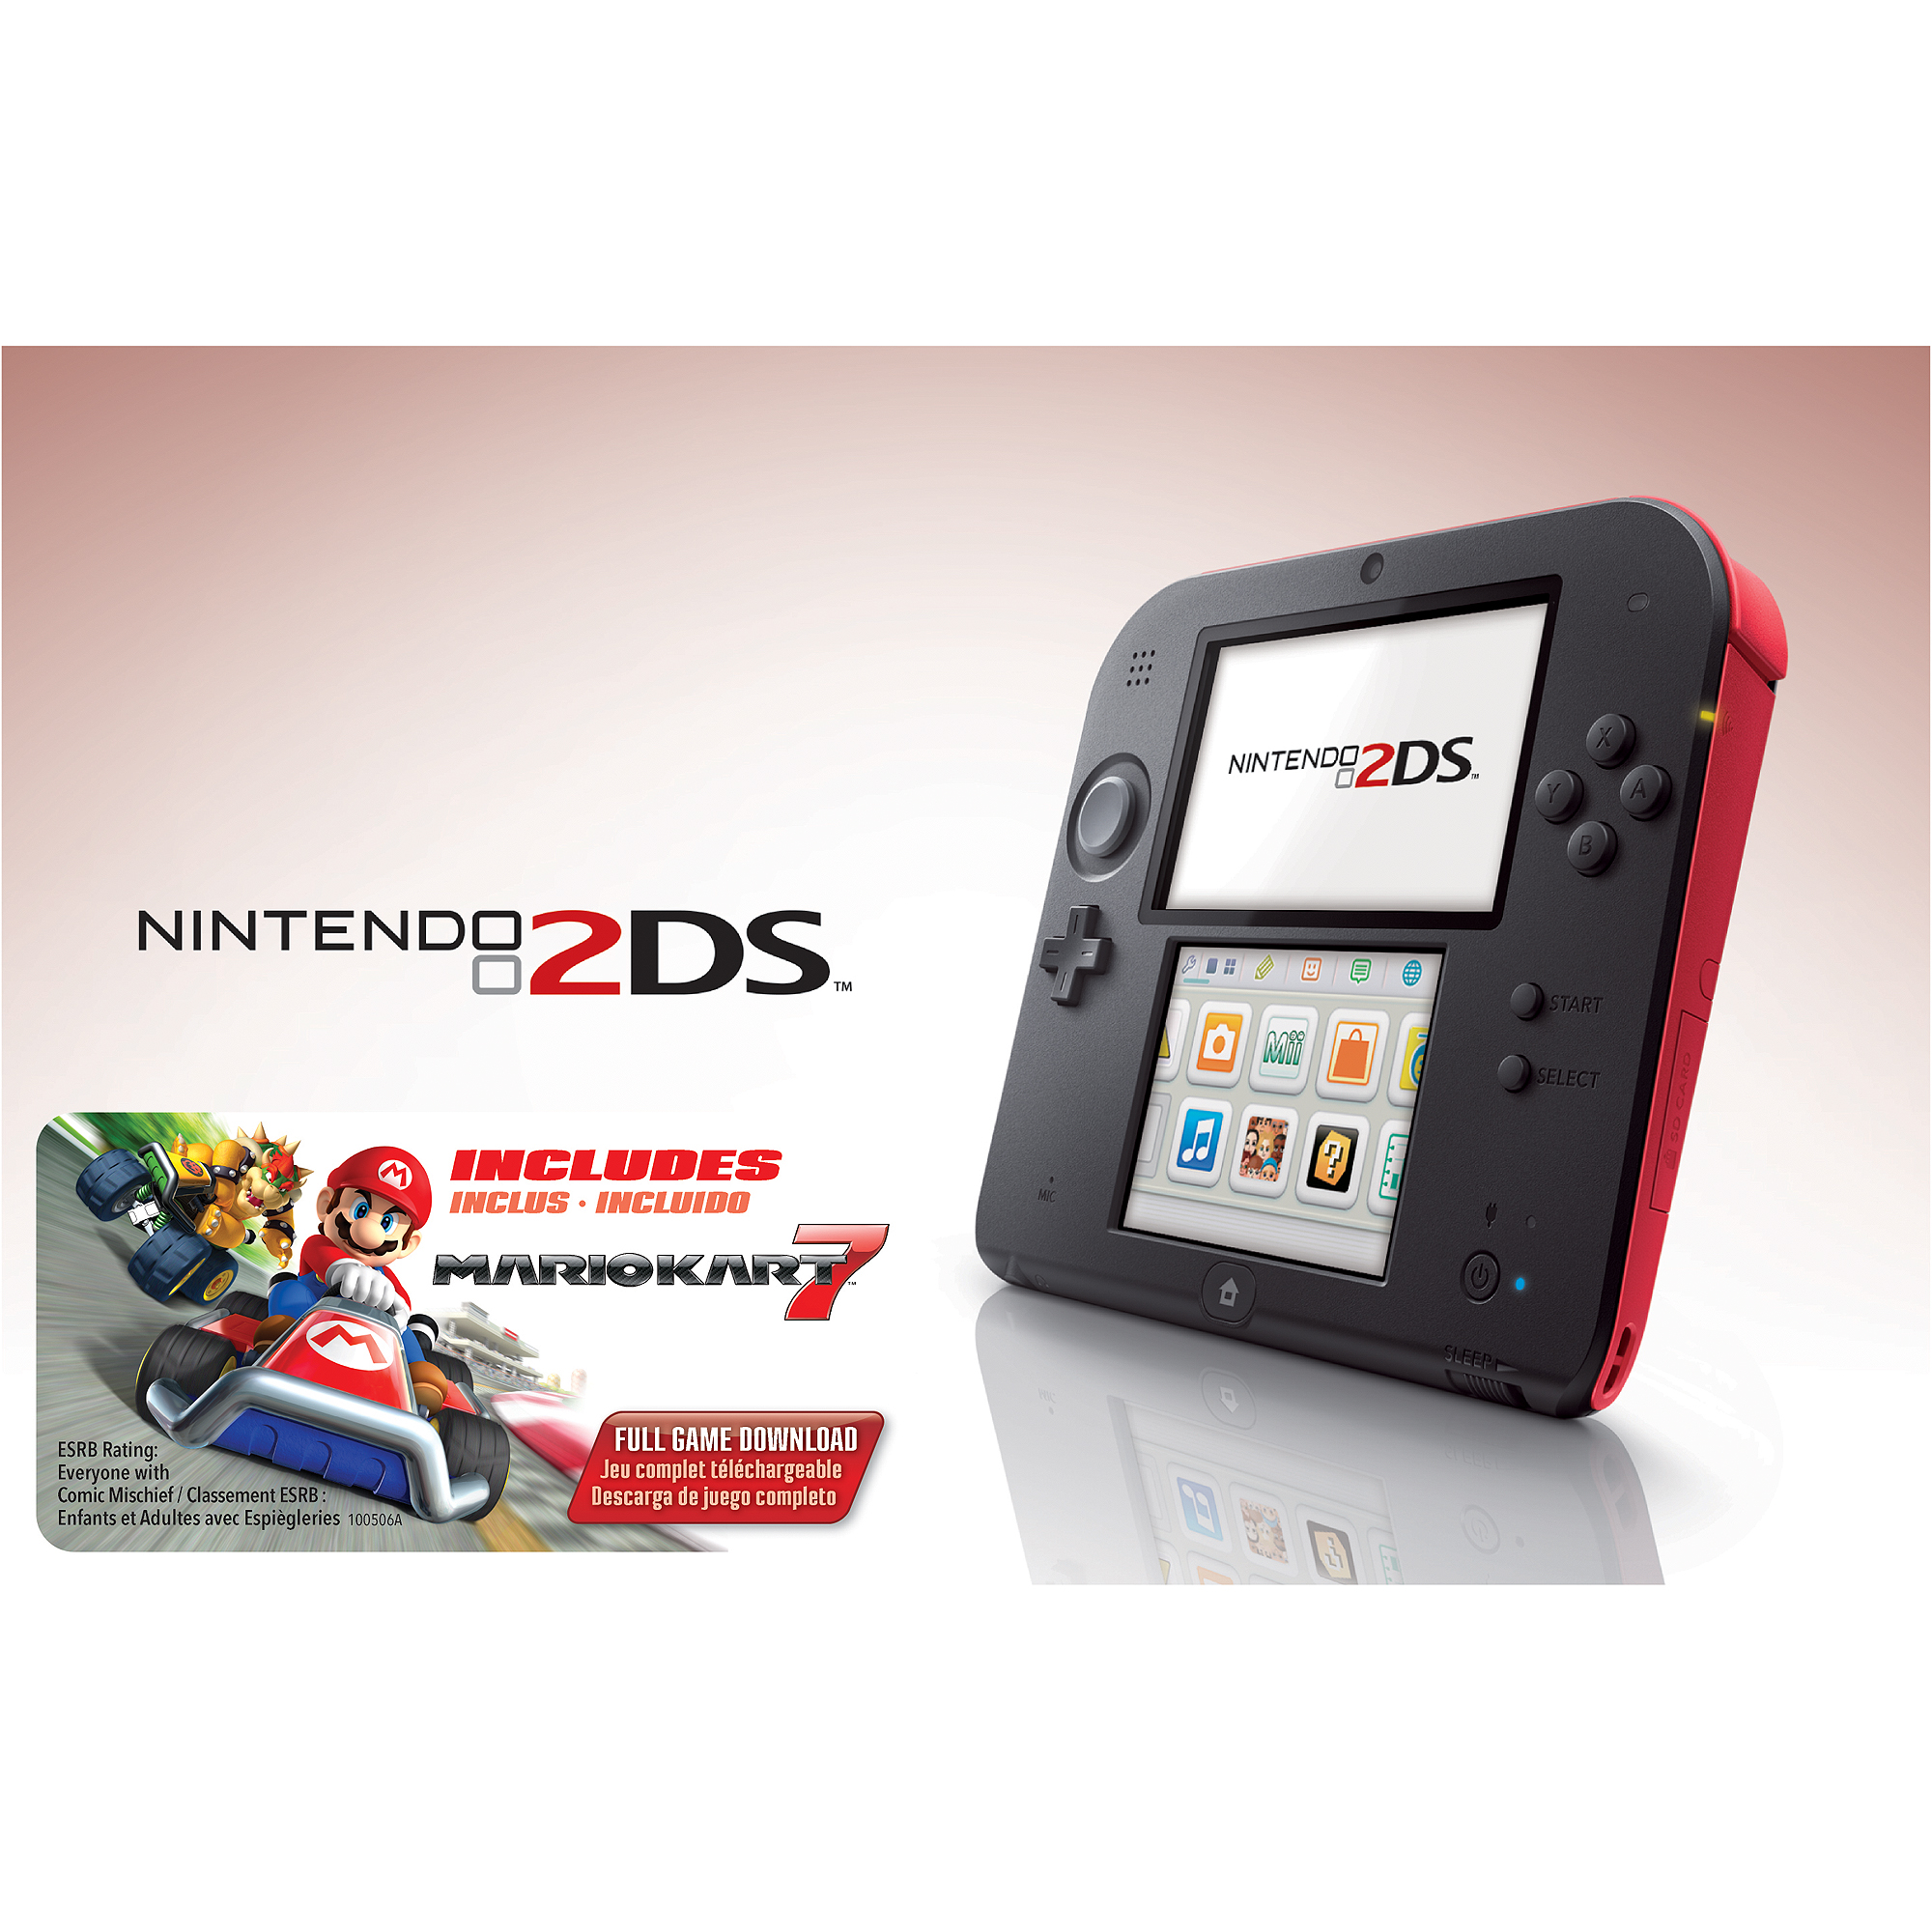 Nintendo 2ds Handheld Game Console 3 5 Active Matrix Tft Color